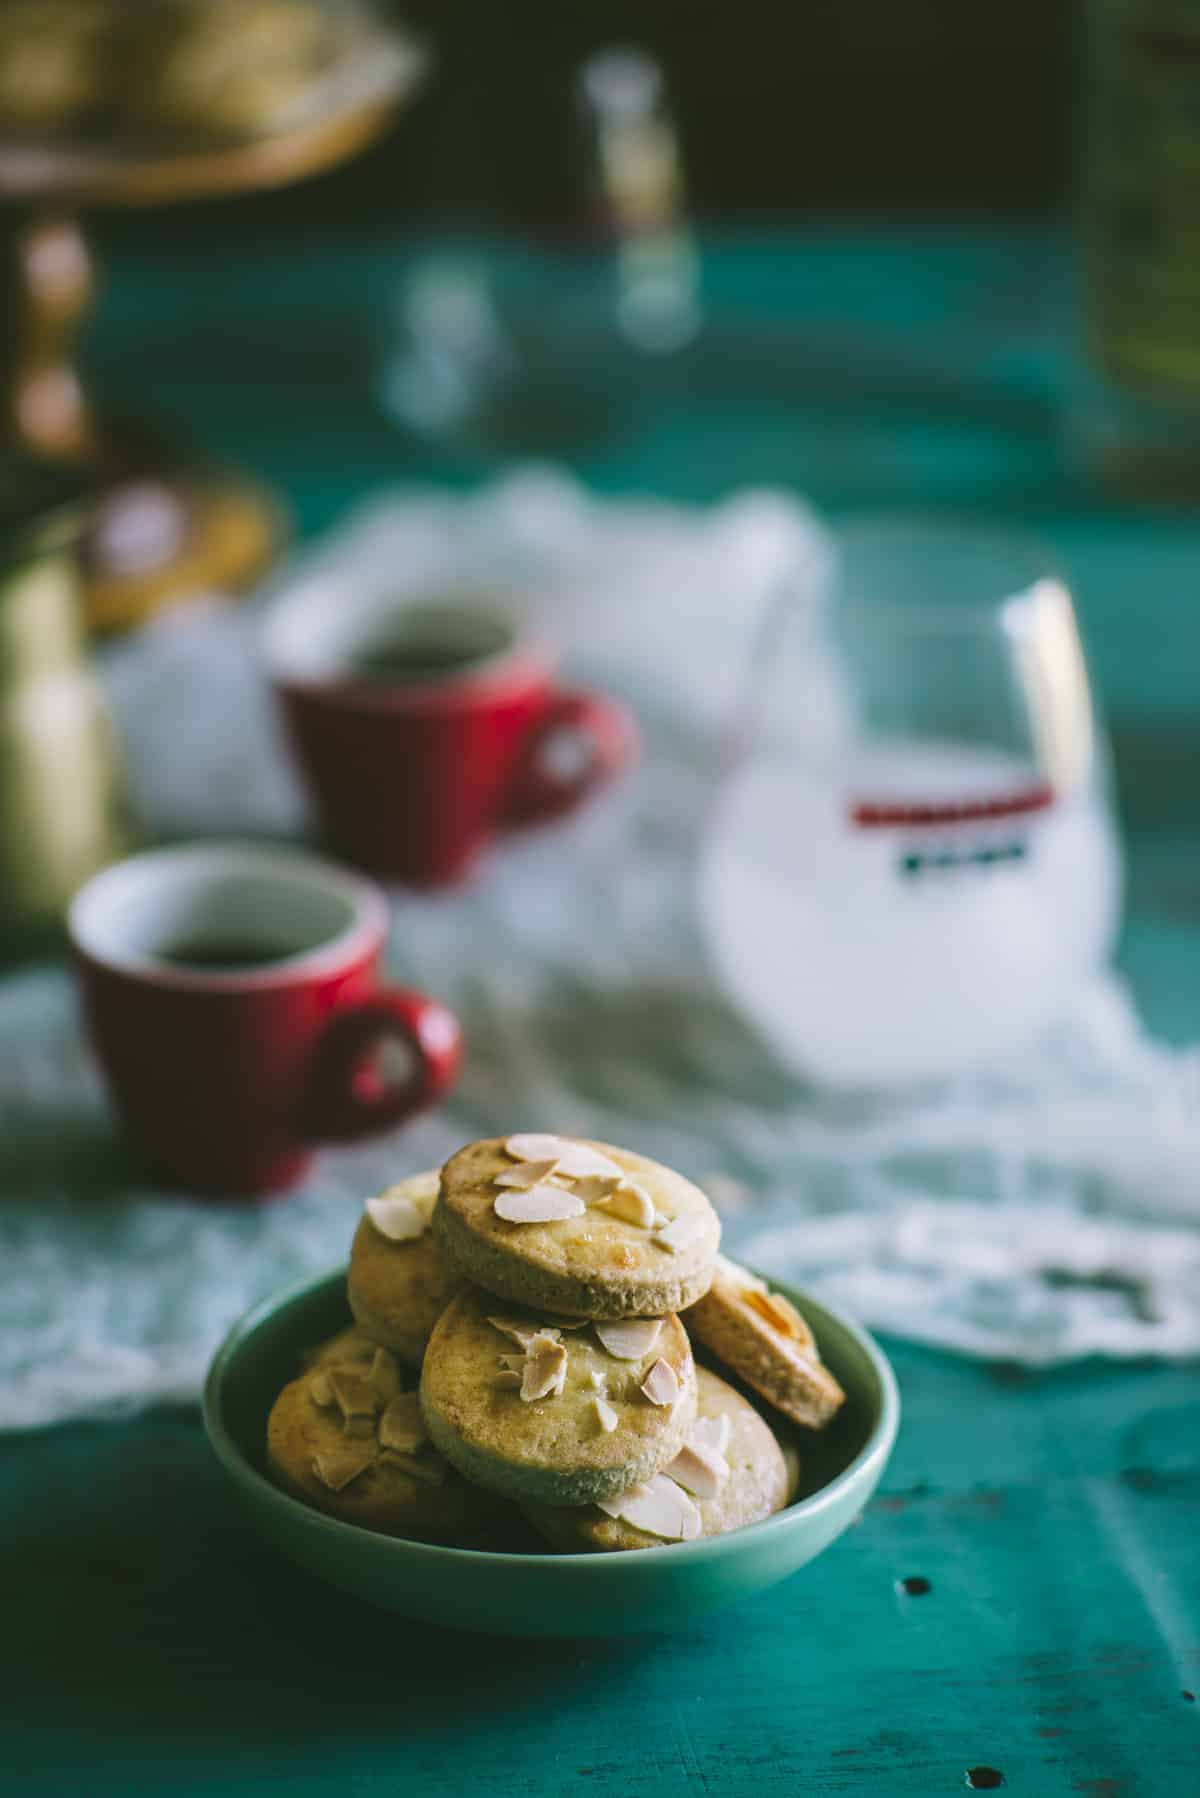 biscuits made with ouzo and lemon and topped with flaked almonds